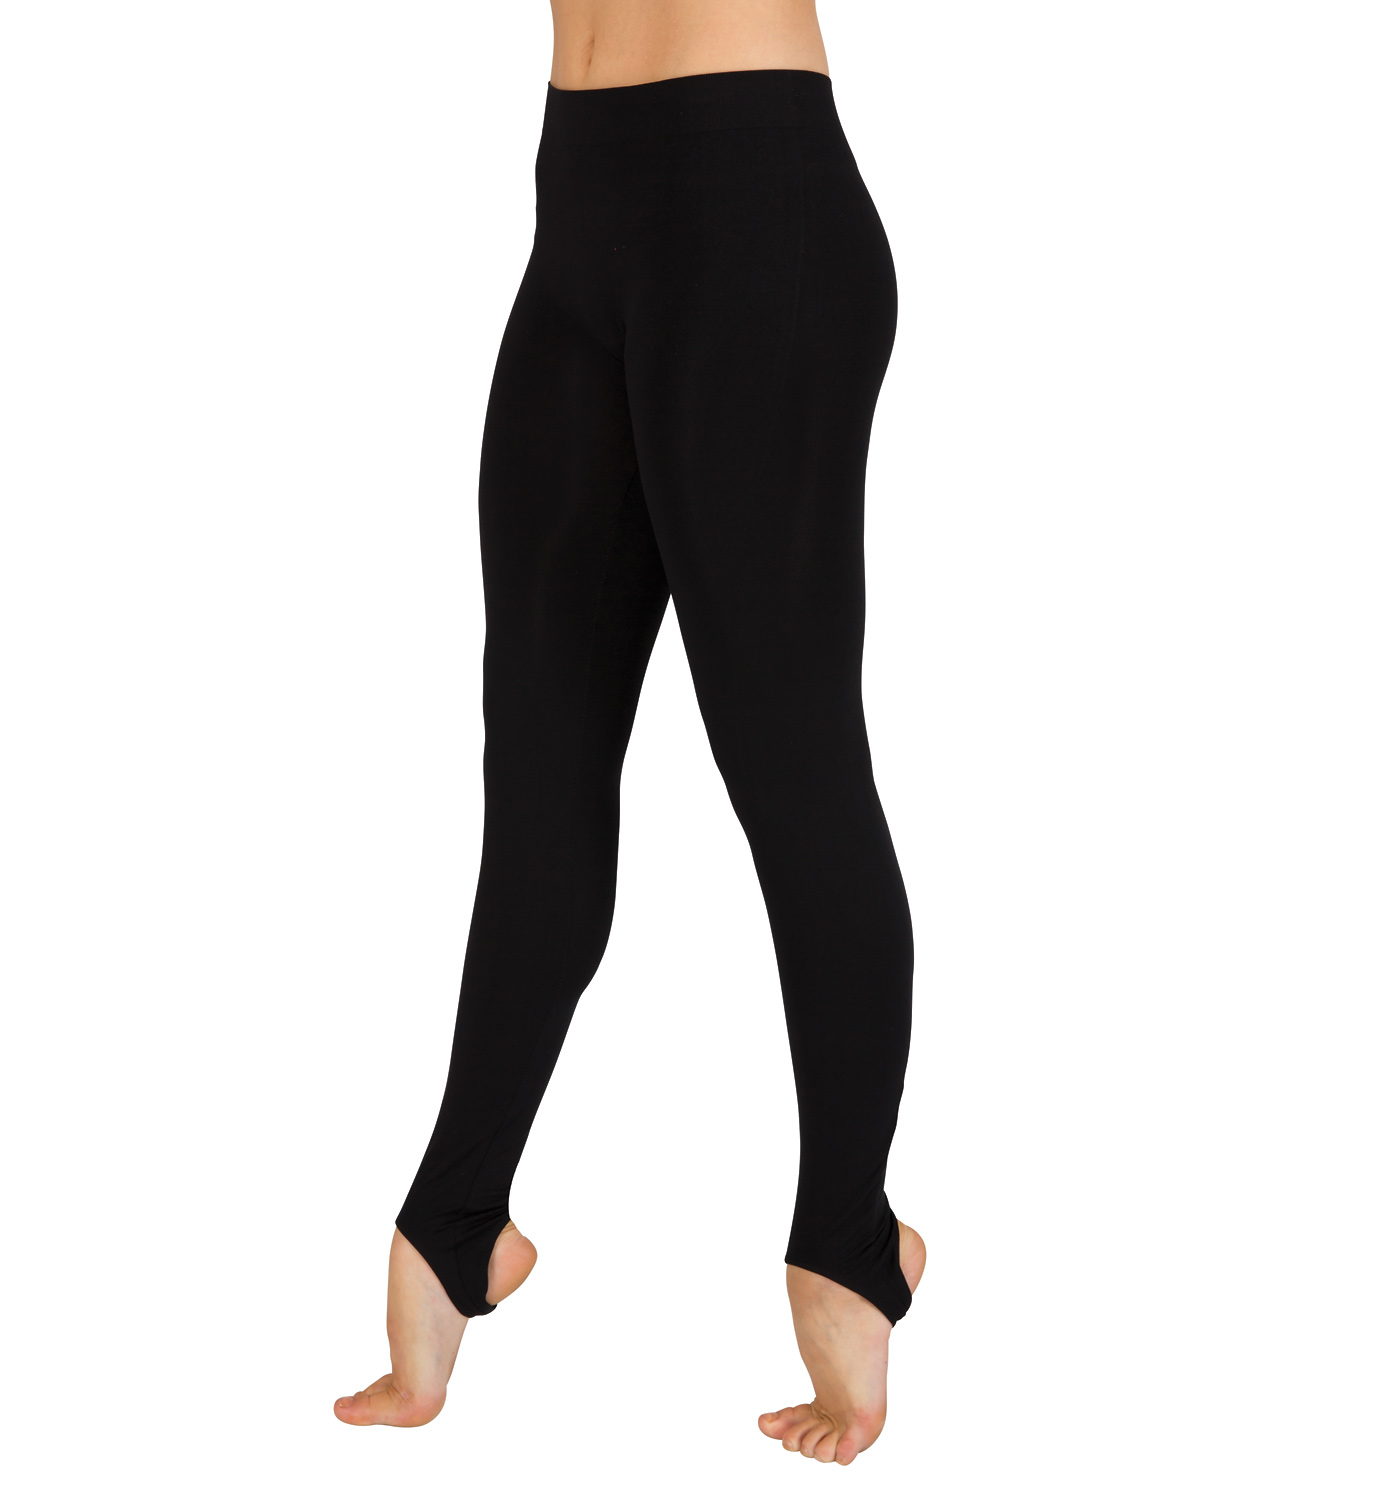 Stirrup pants (or stirrup leggings) are a type of close-fitting ladies' pant that tapers at the ankle, similar to leggings, except that the material extends to a band, or strap, that is worn under the arch of the foot to hold the pant leg in place. The band of material is often elasticized to .